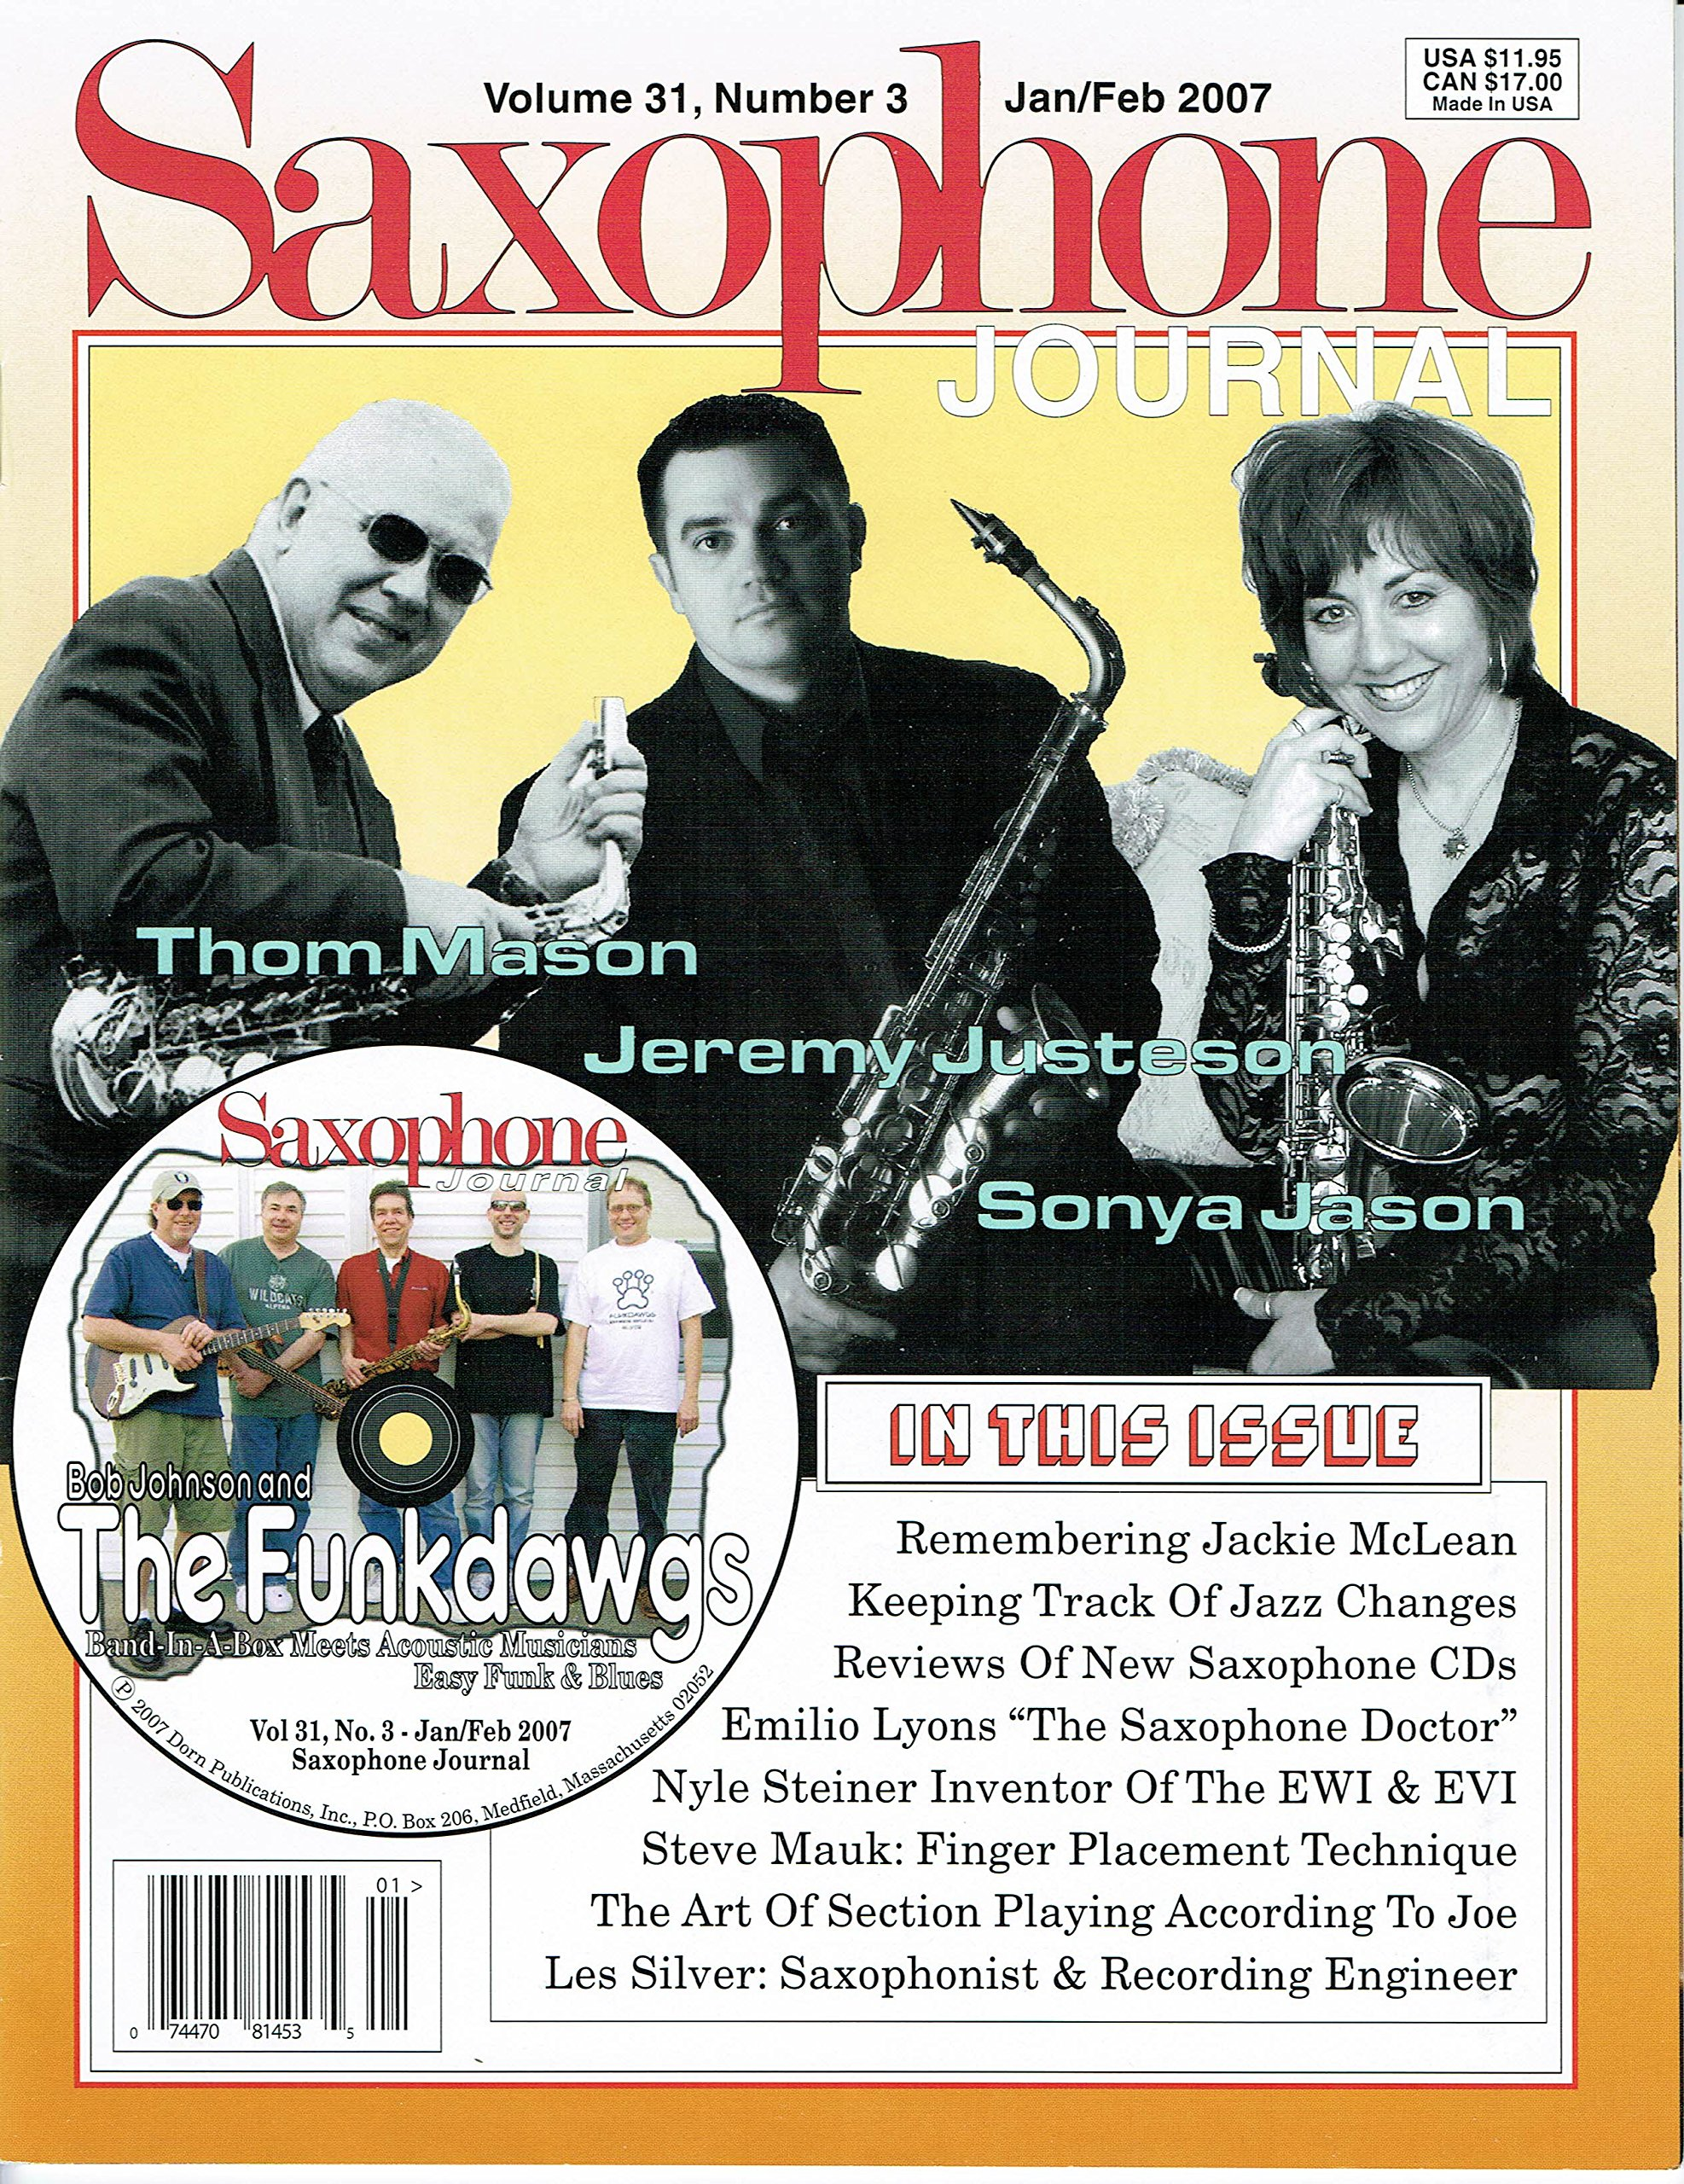 Download Bob Johnson and The Funkdawgs, Band in a Box Meets Acoustic Musicians, Easy Funk & Blues/ Play-Along CD by Bob Johnson Published by Saxophone Journal - 1/07 pdf epub